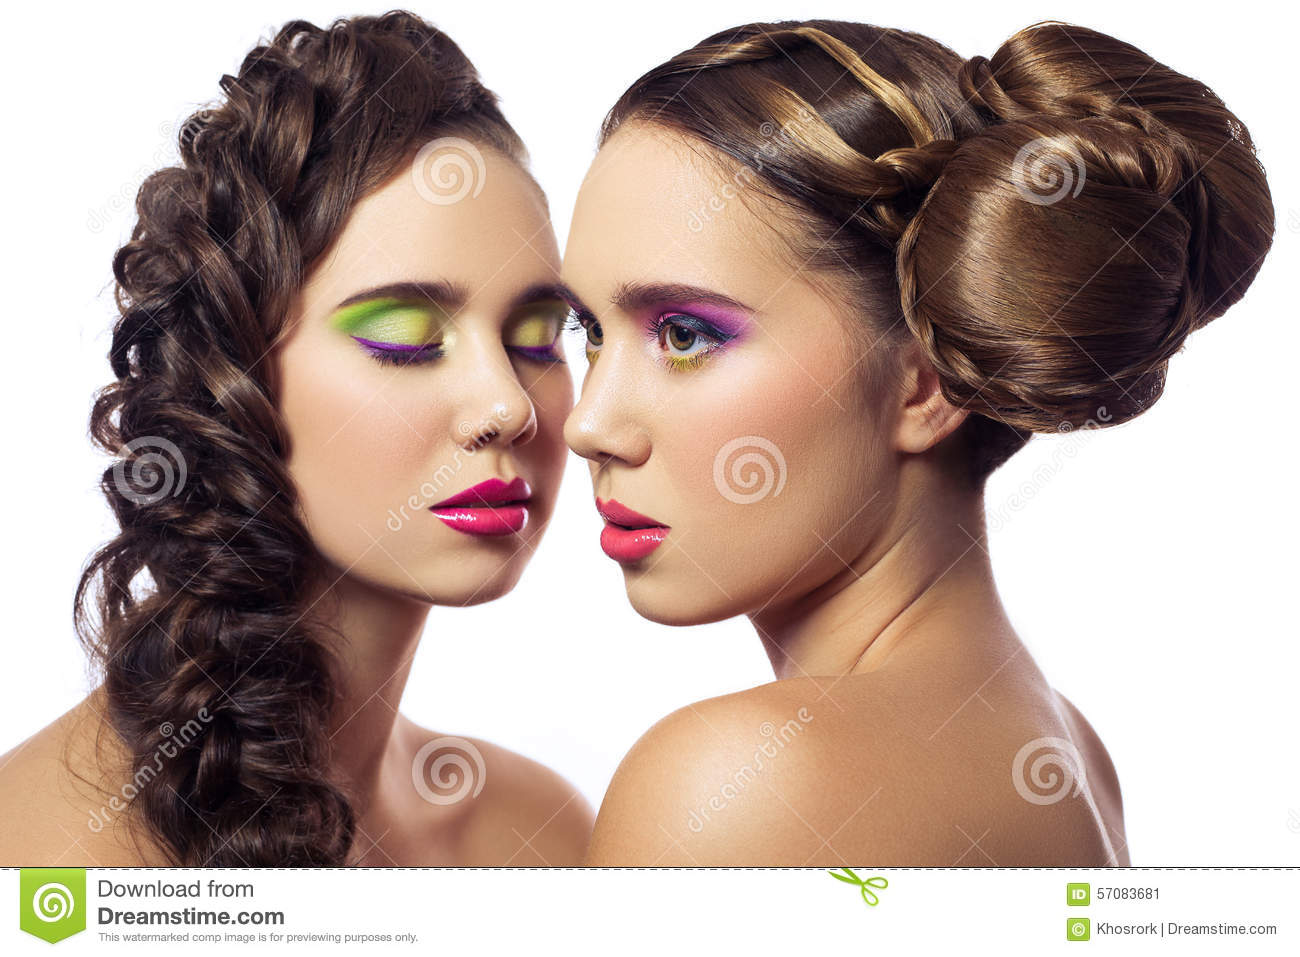 Portrait of beautiful twins young fashion women with hairstyle and red pink green makeup. isolated on white background.